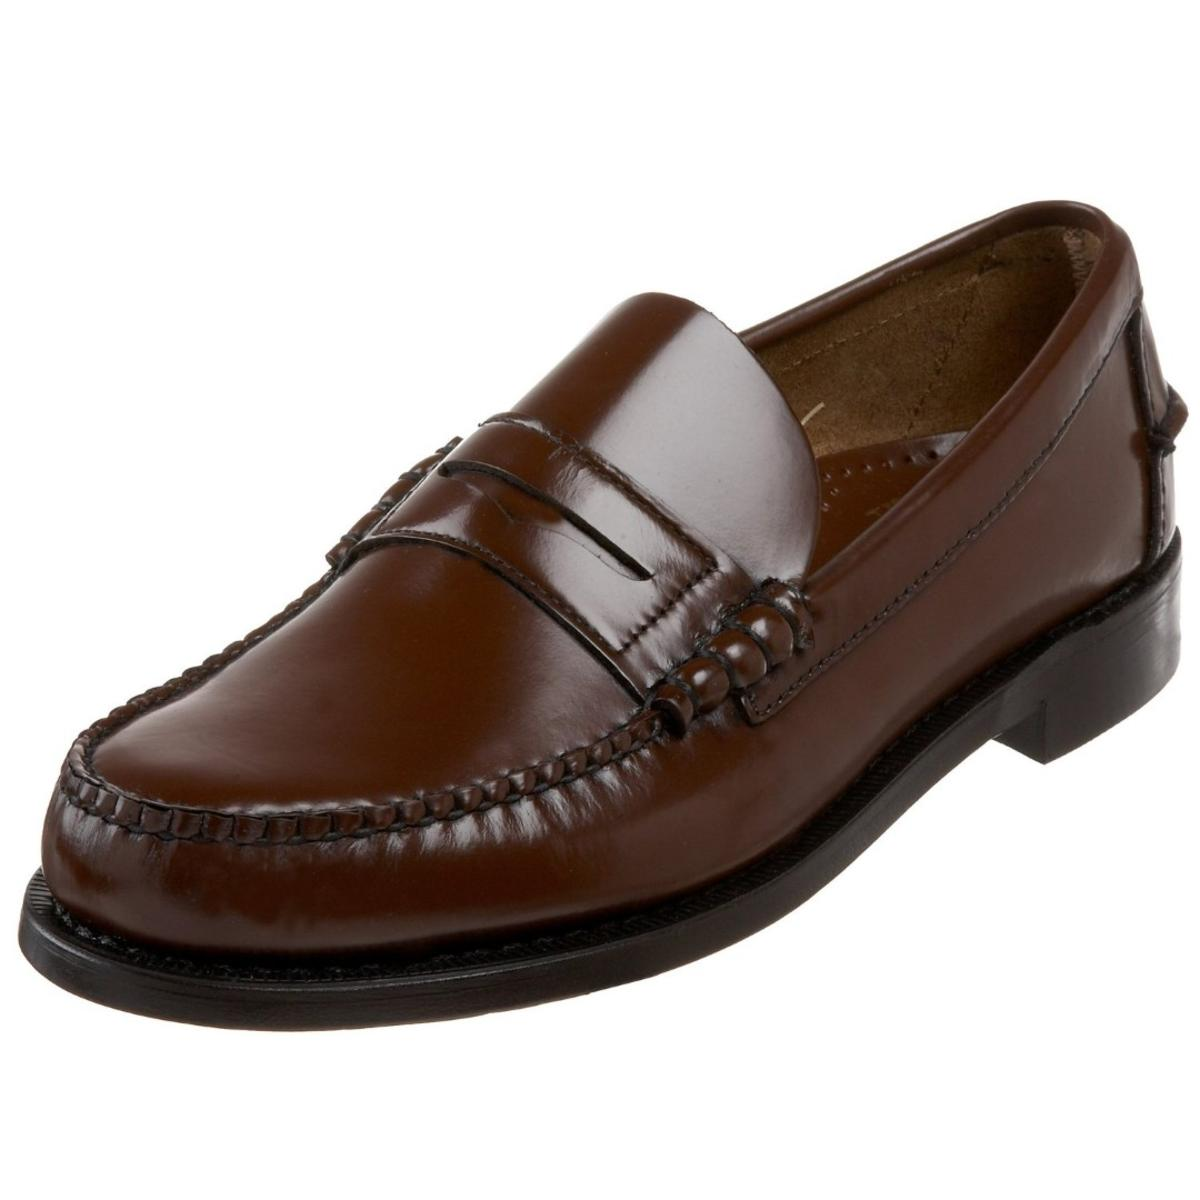 Sebago Men's Classic Whiskey Loafers by Sebago